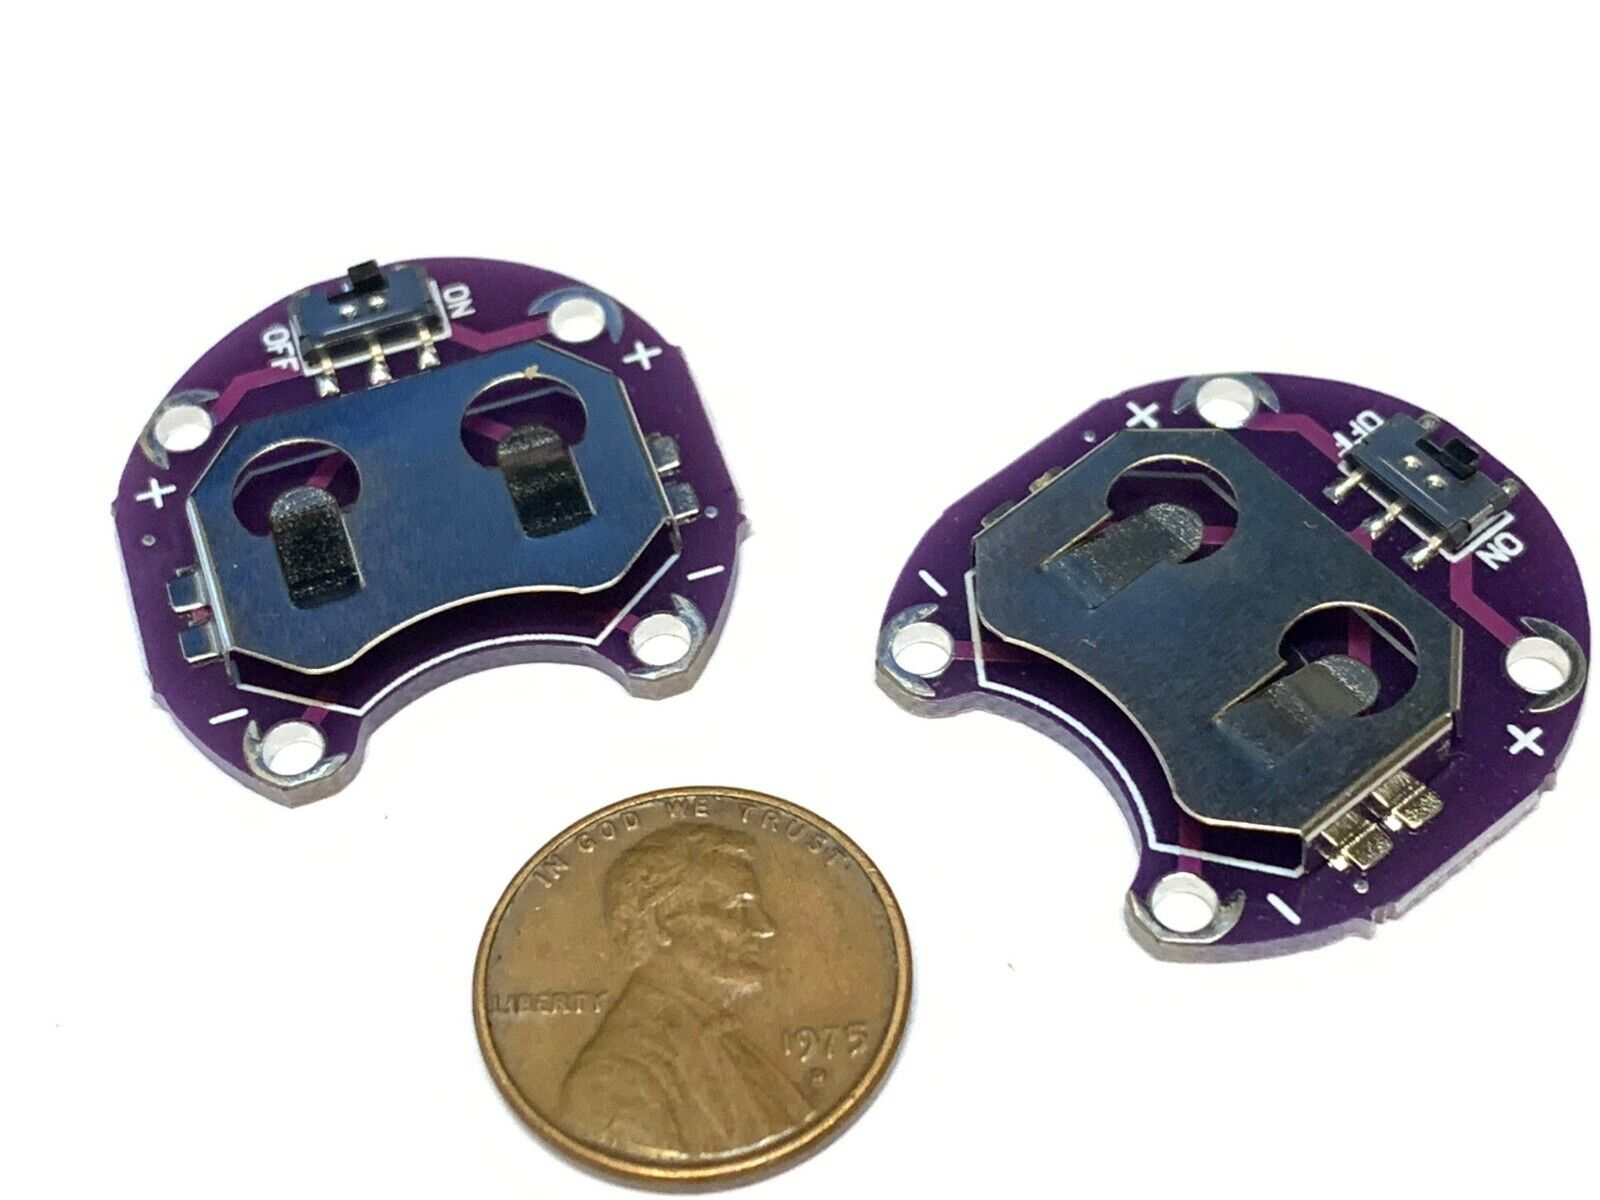 Coin Cell Battery Holder For Lilypad Cr2032 Battery Mount Module For Arduino For Sale Online Ebay